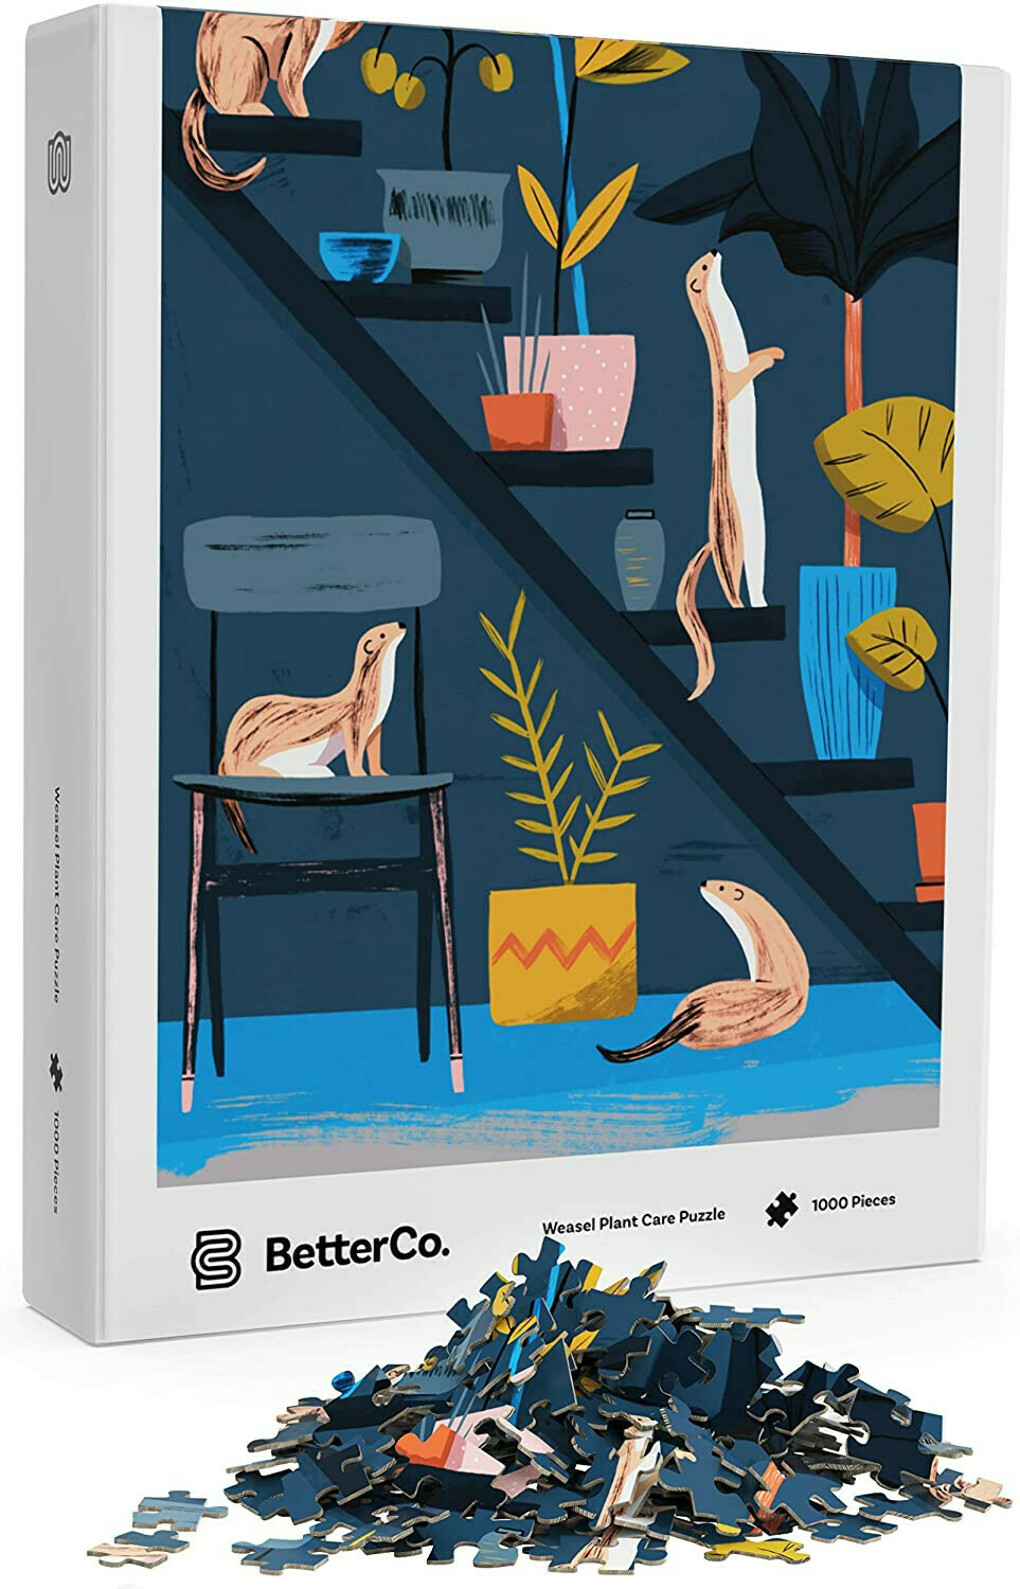 BetterCo. - Weasel Plant Care Puzzle 1000 Piece - Difficult Jigsaw Puzzles 1000 Pieces - Challenge Yourself with 1000 Piece Puzzles for Adults, Teens, and Kids